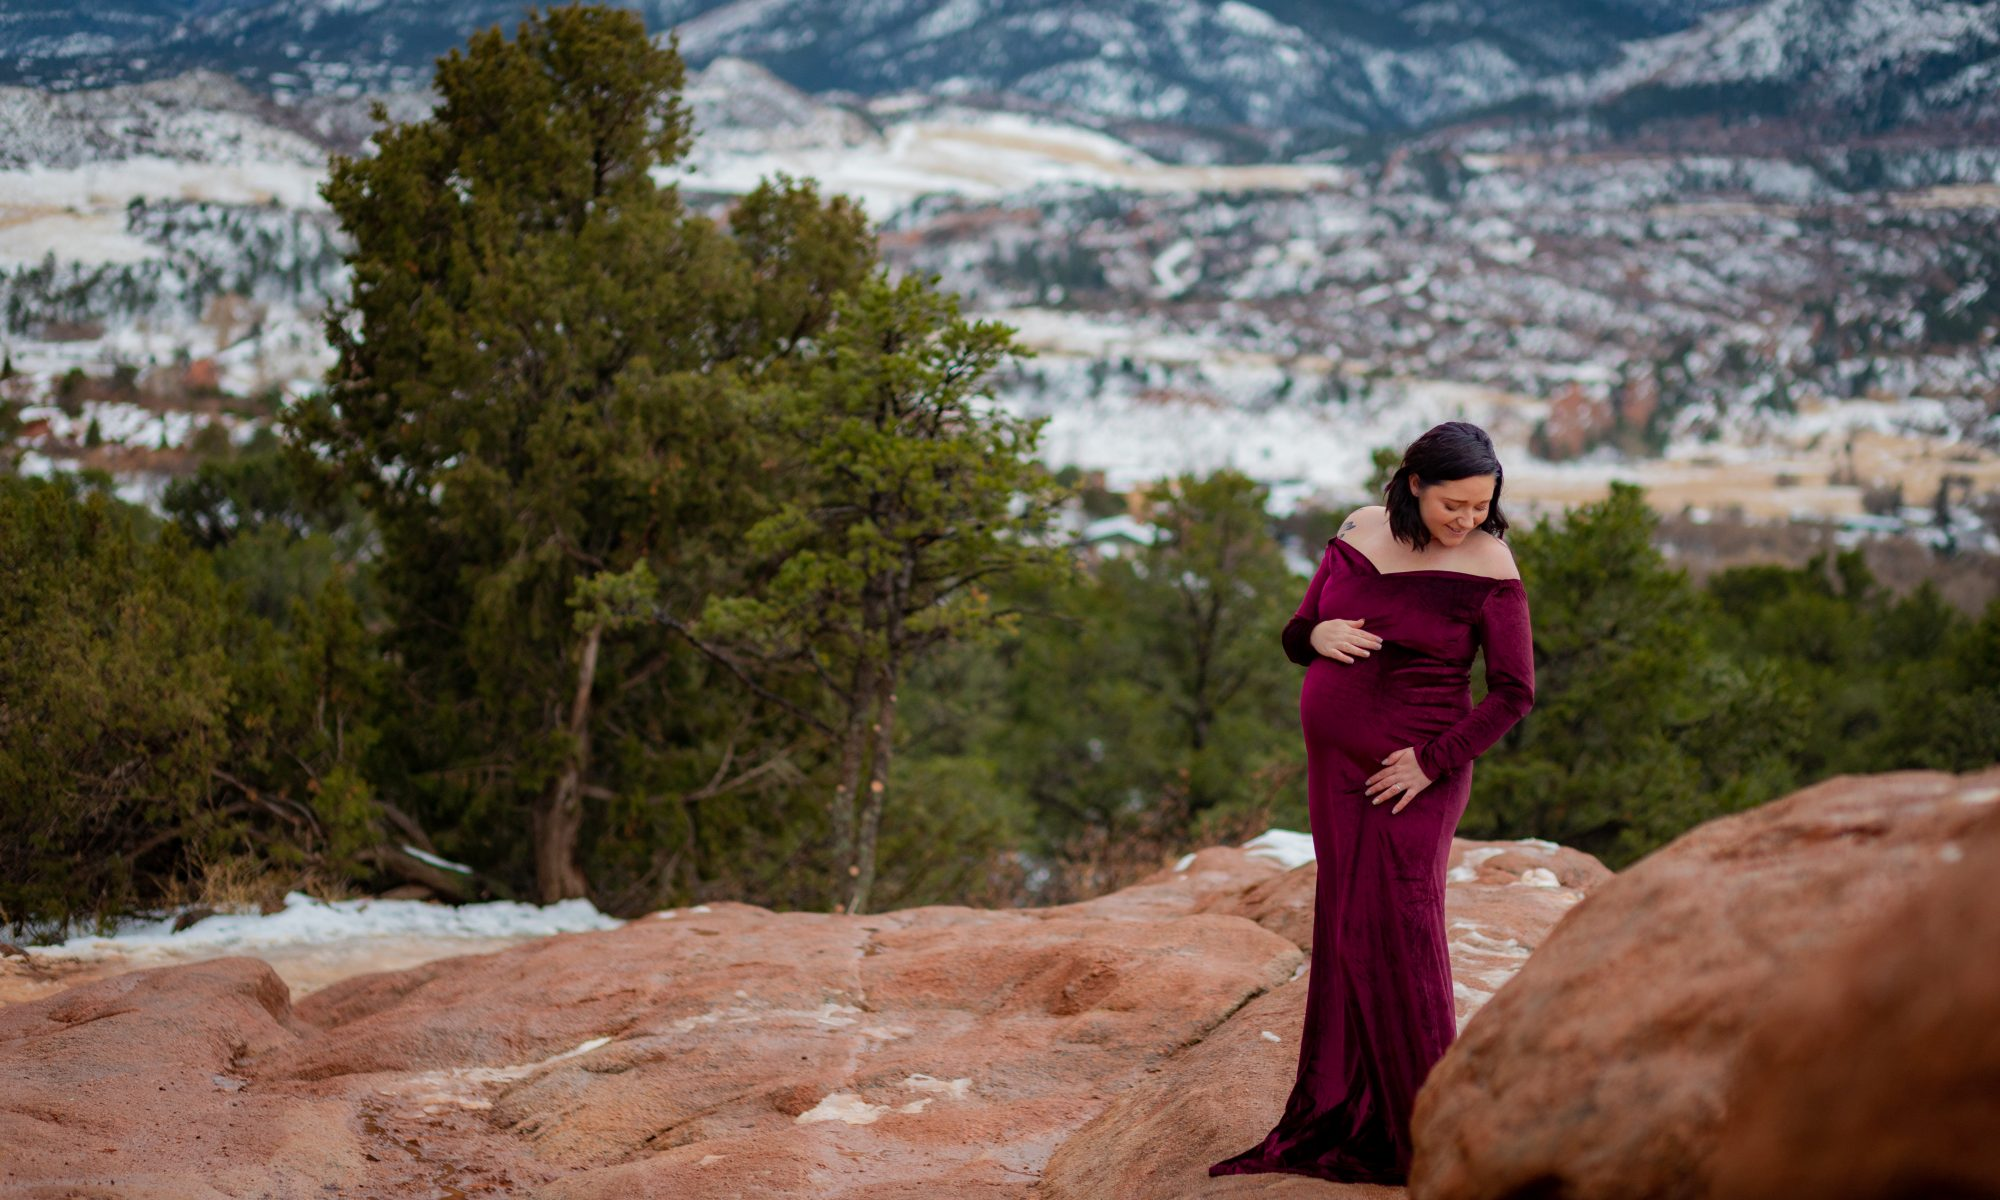 Maternity Portrait in the snow at Garden of the Gods park in a red gown